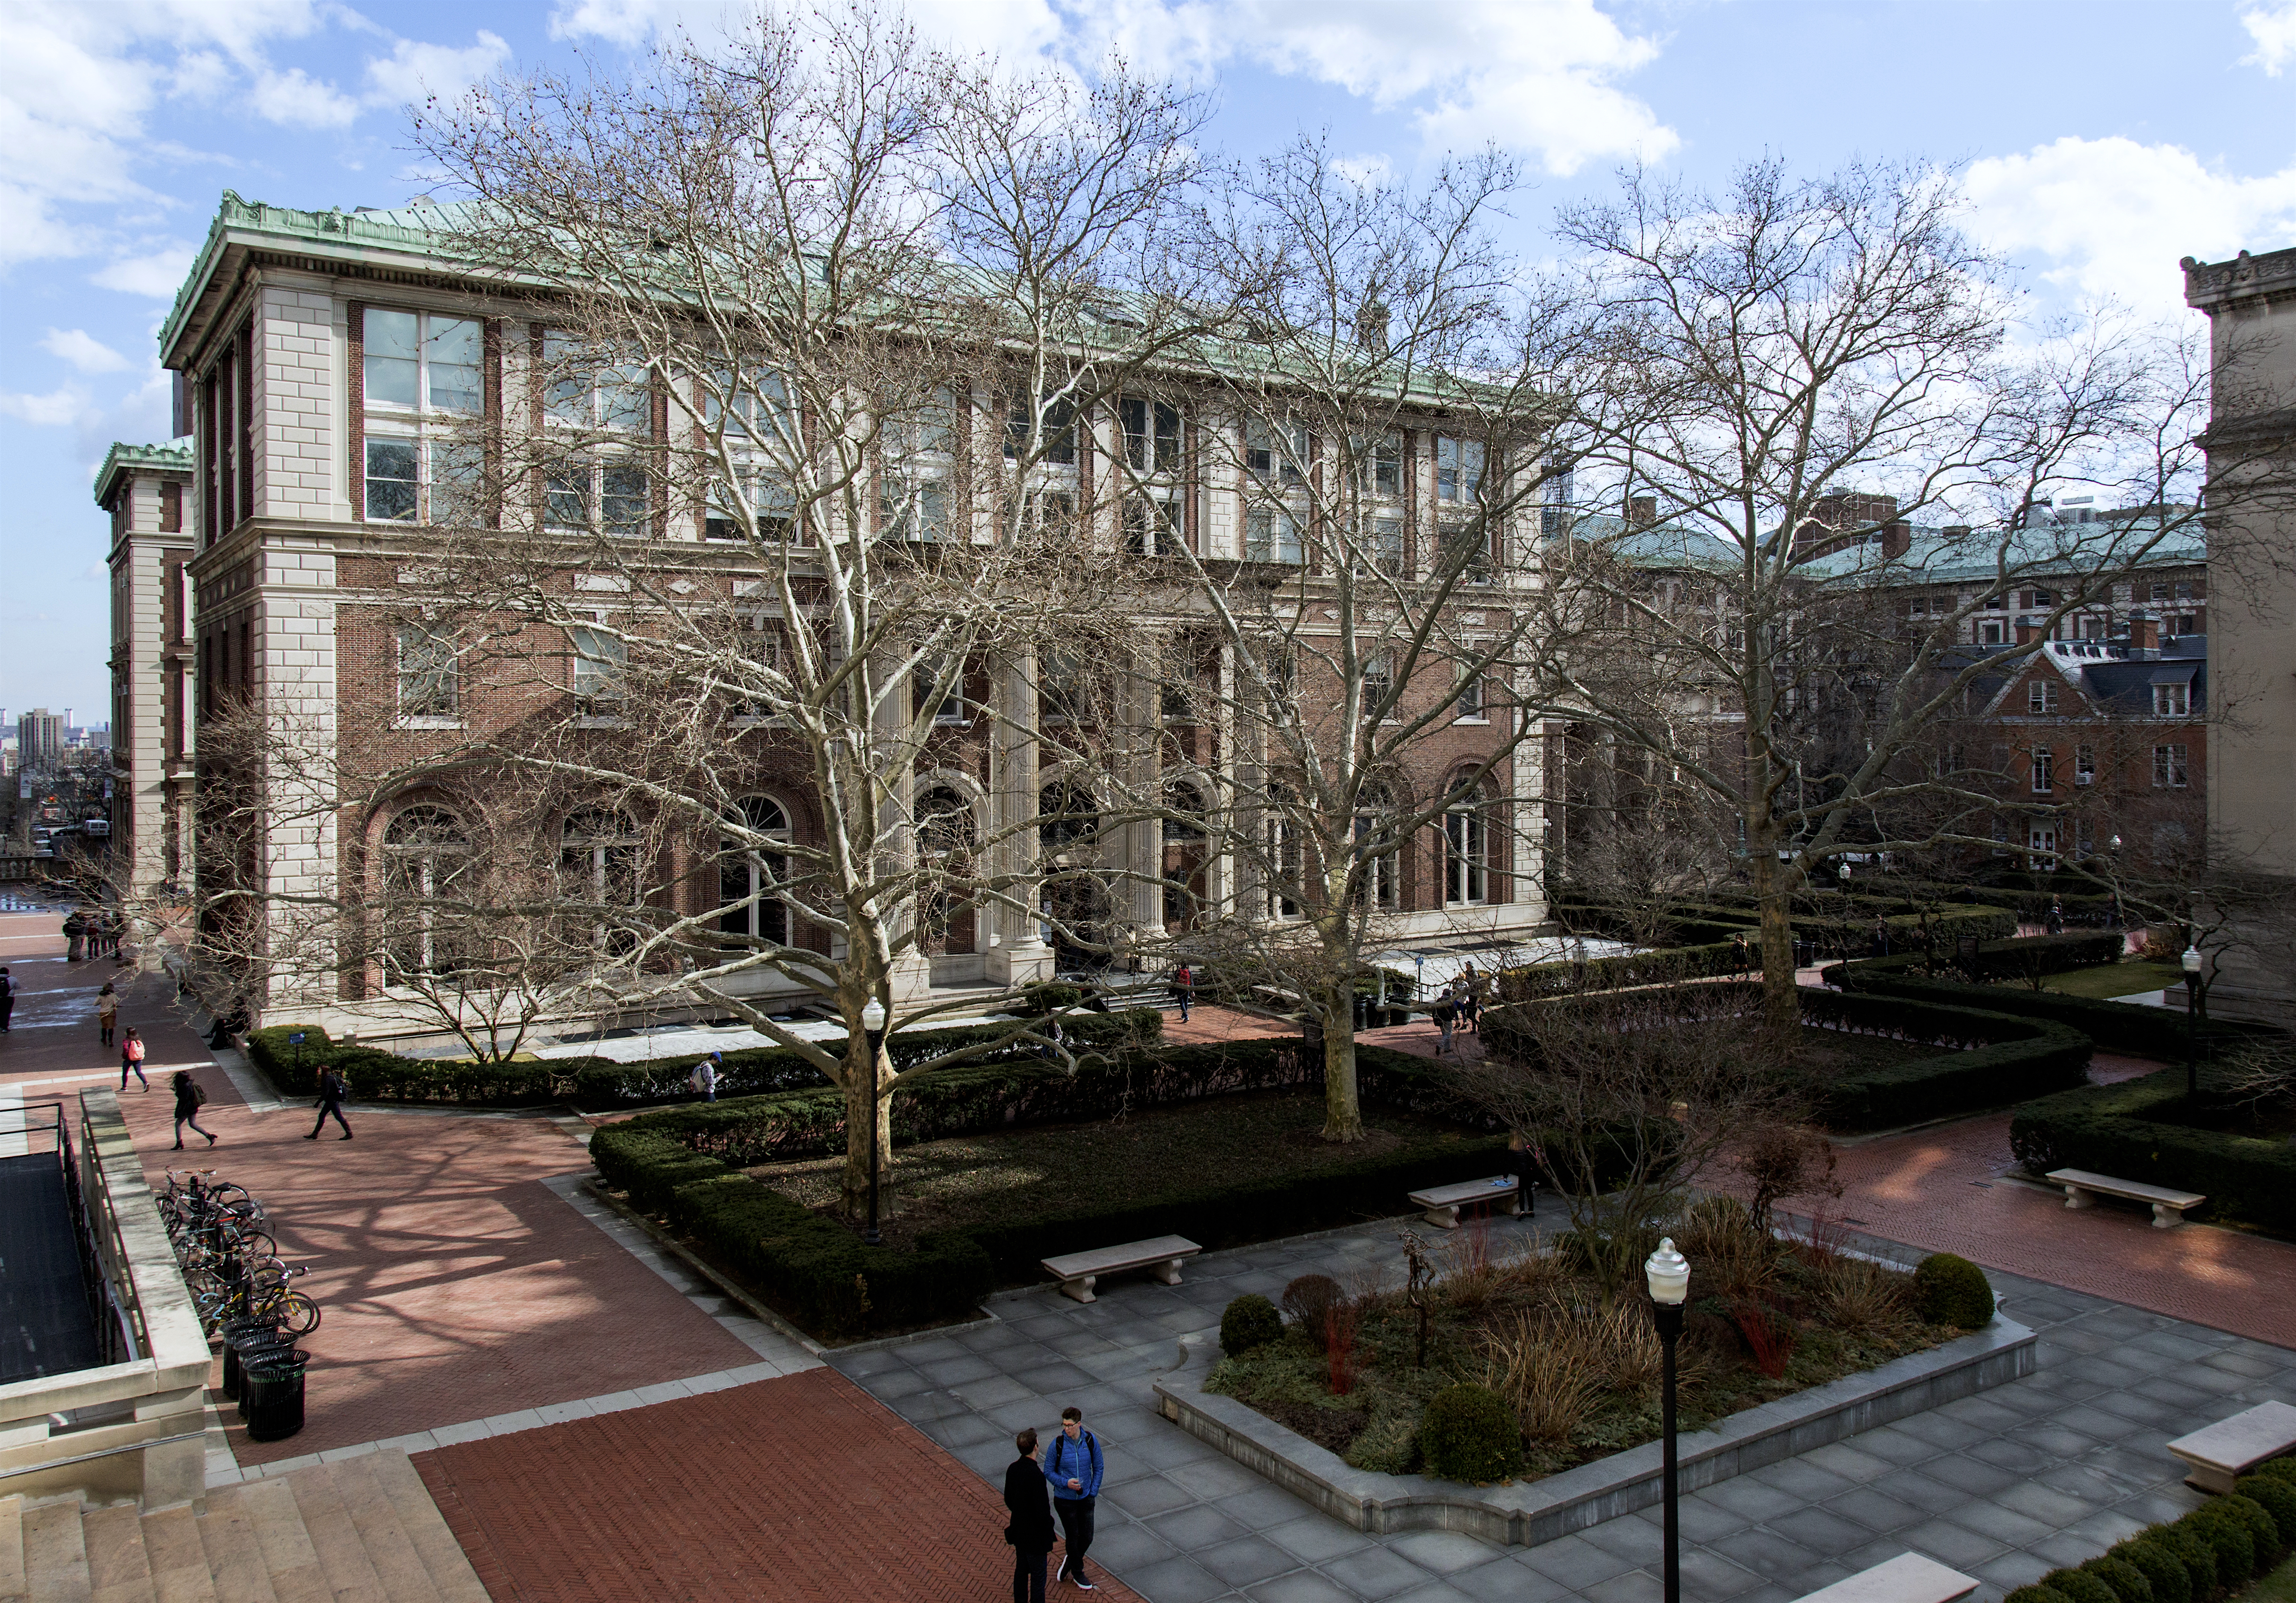 Columbia graduate school of architecture planning and preservation wikipedia